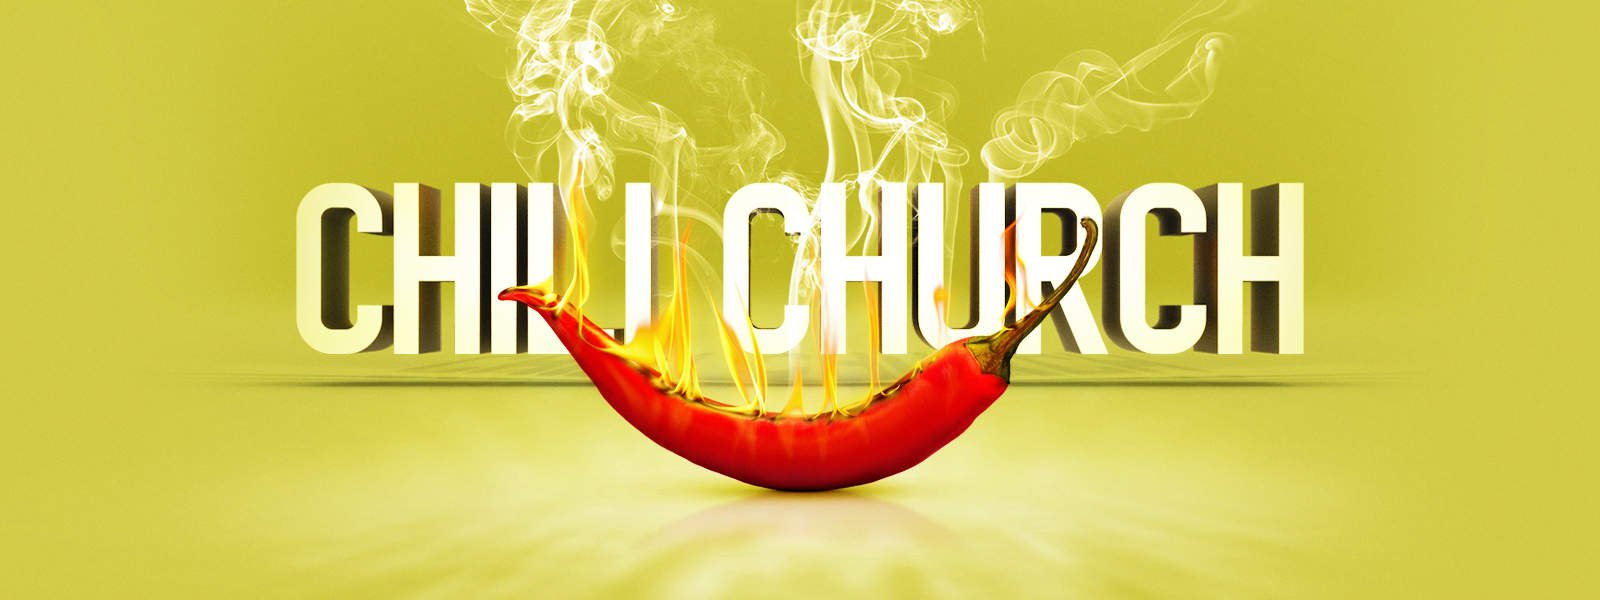 Chili Church 2016